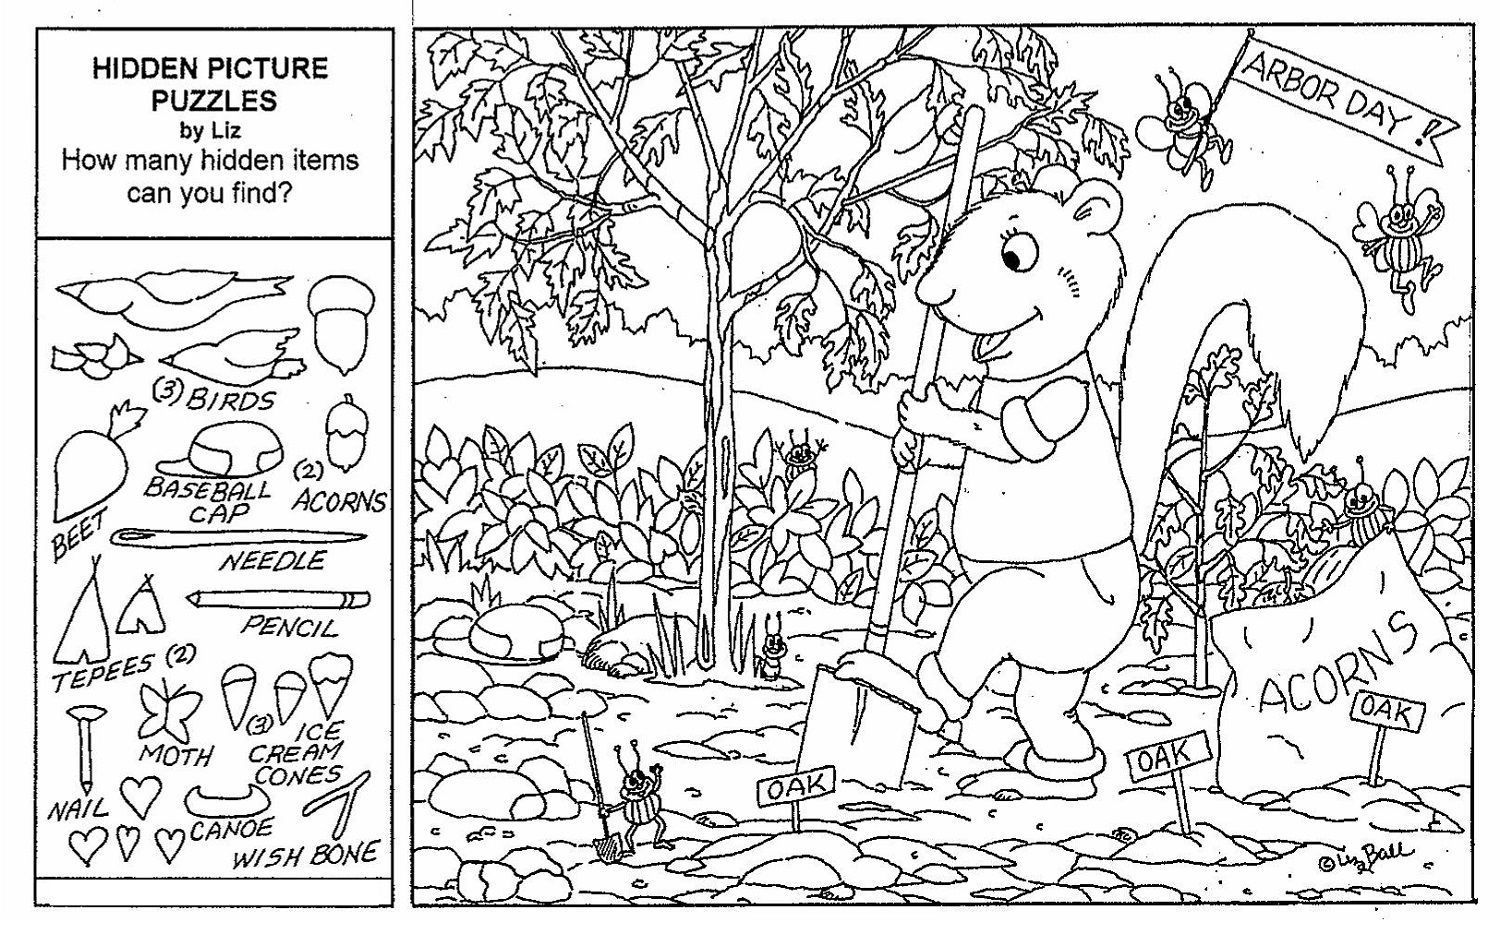 Hidden Objects Worksheets - Briefencounters Worksheet Template - Printable Hidden Puzzle Pictures